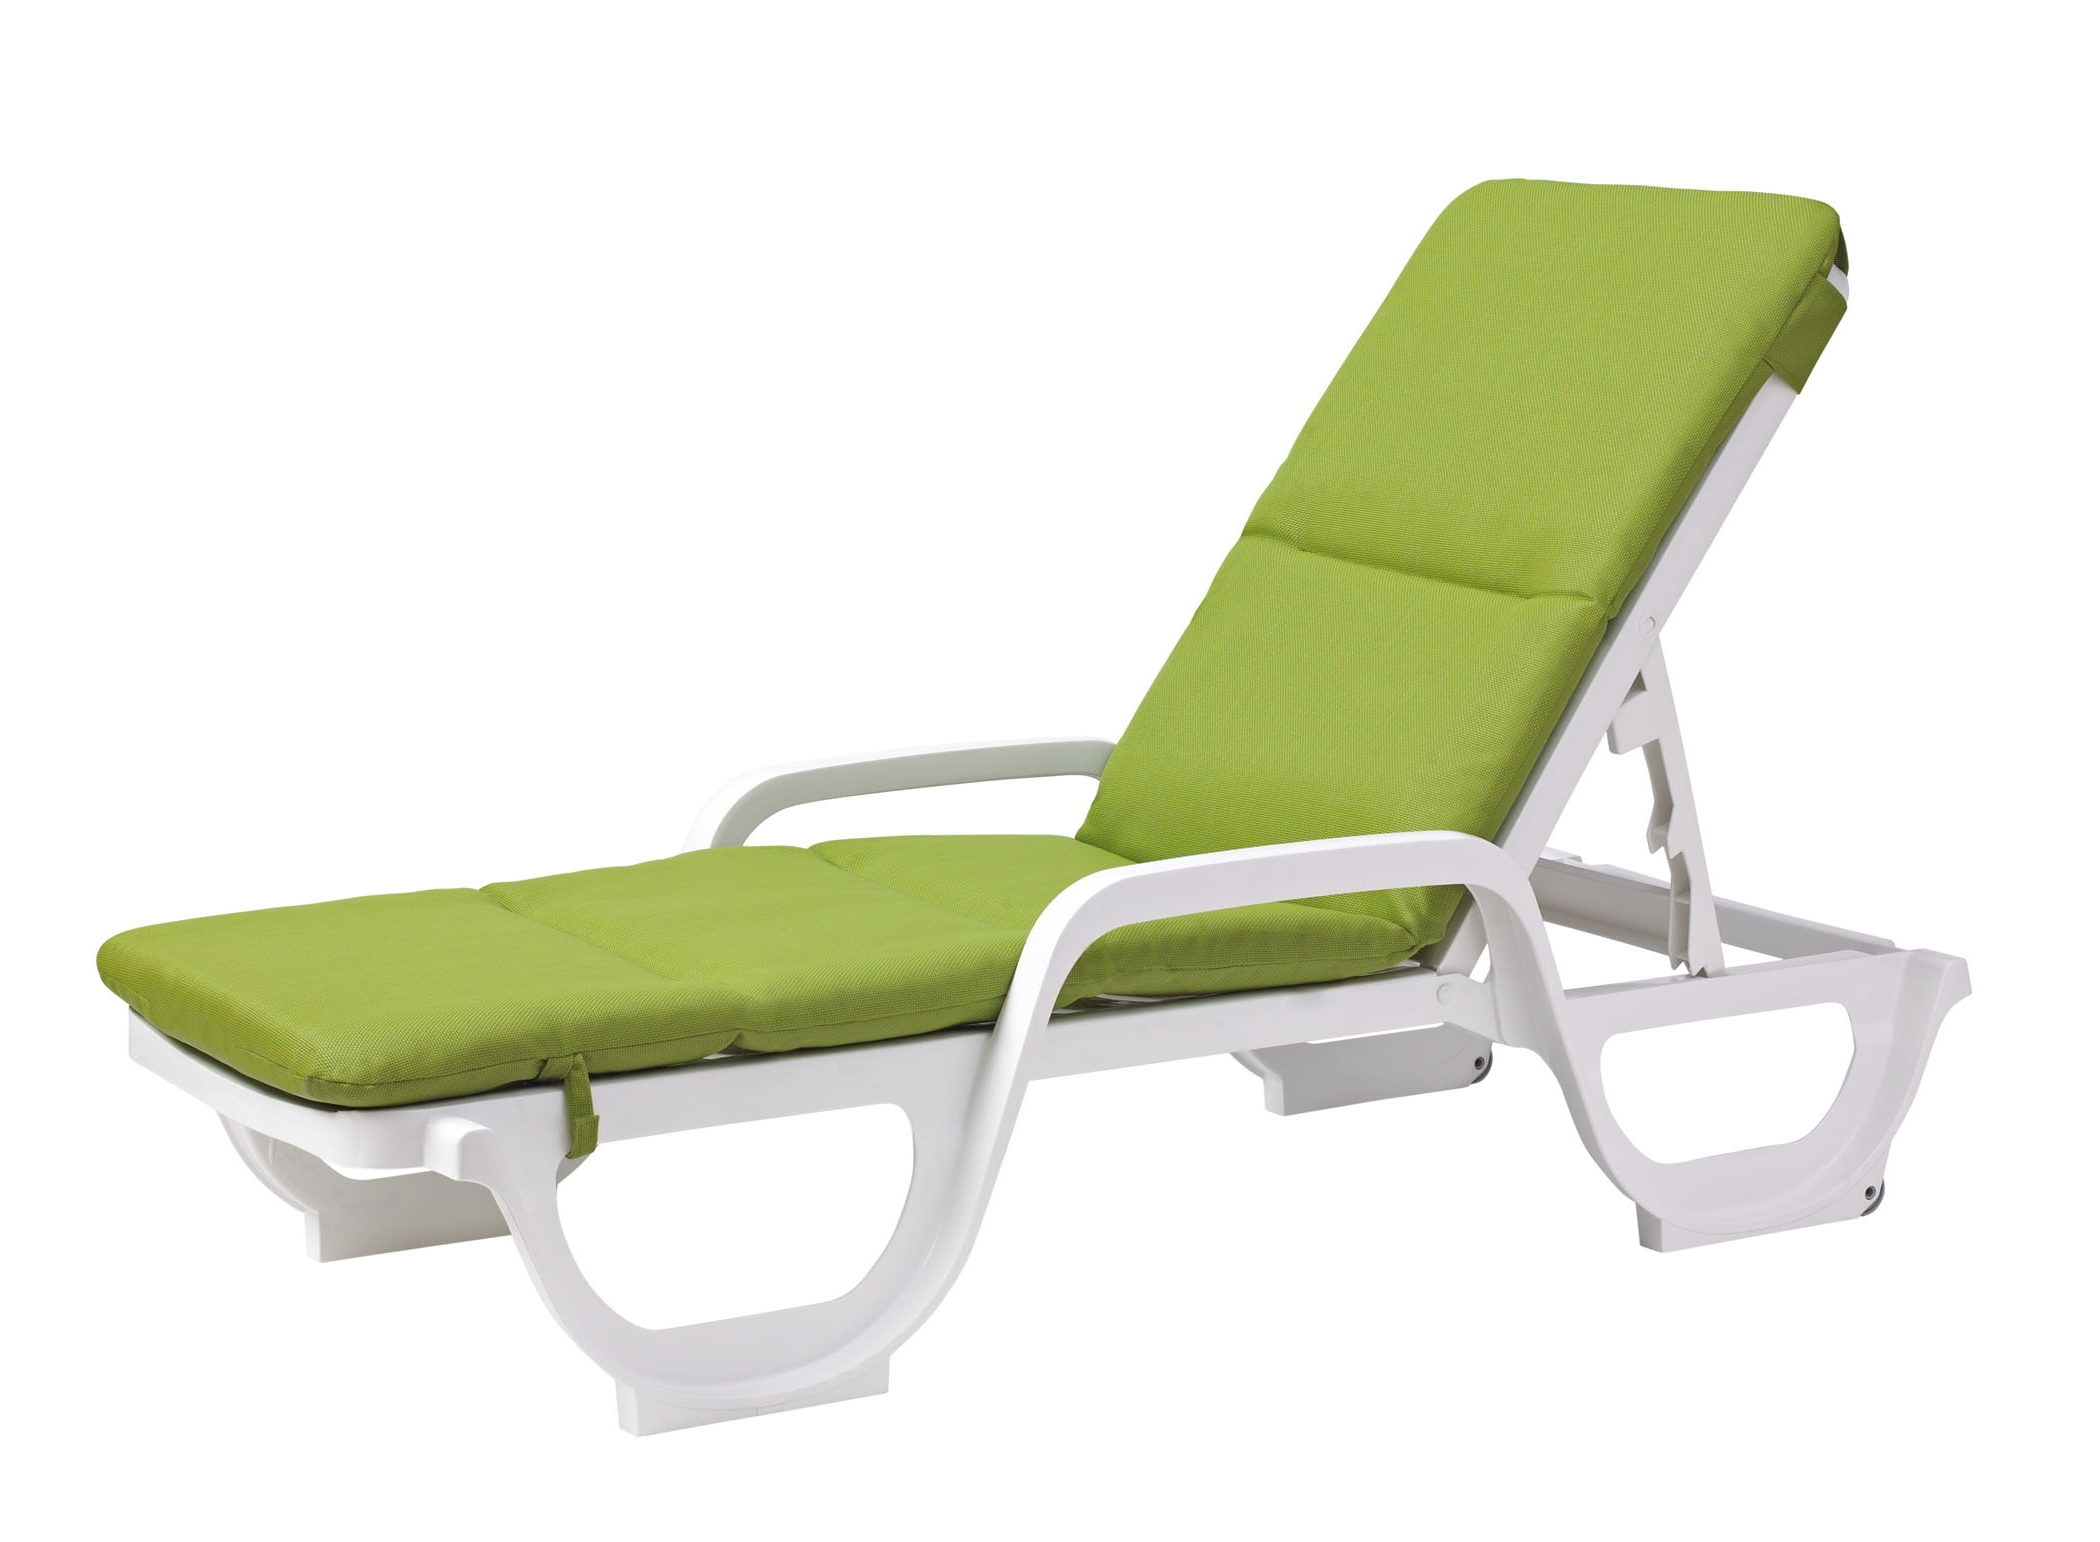 Most Current White Chaise Lounge Chair Cushions • Lounge Chairs Ideas Pertaining To Chaise Lounge Chairs With Cushions (View 4 of 15)